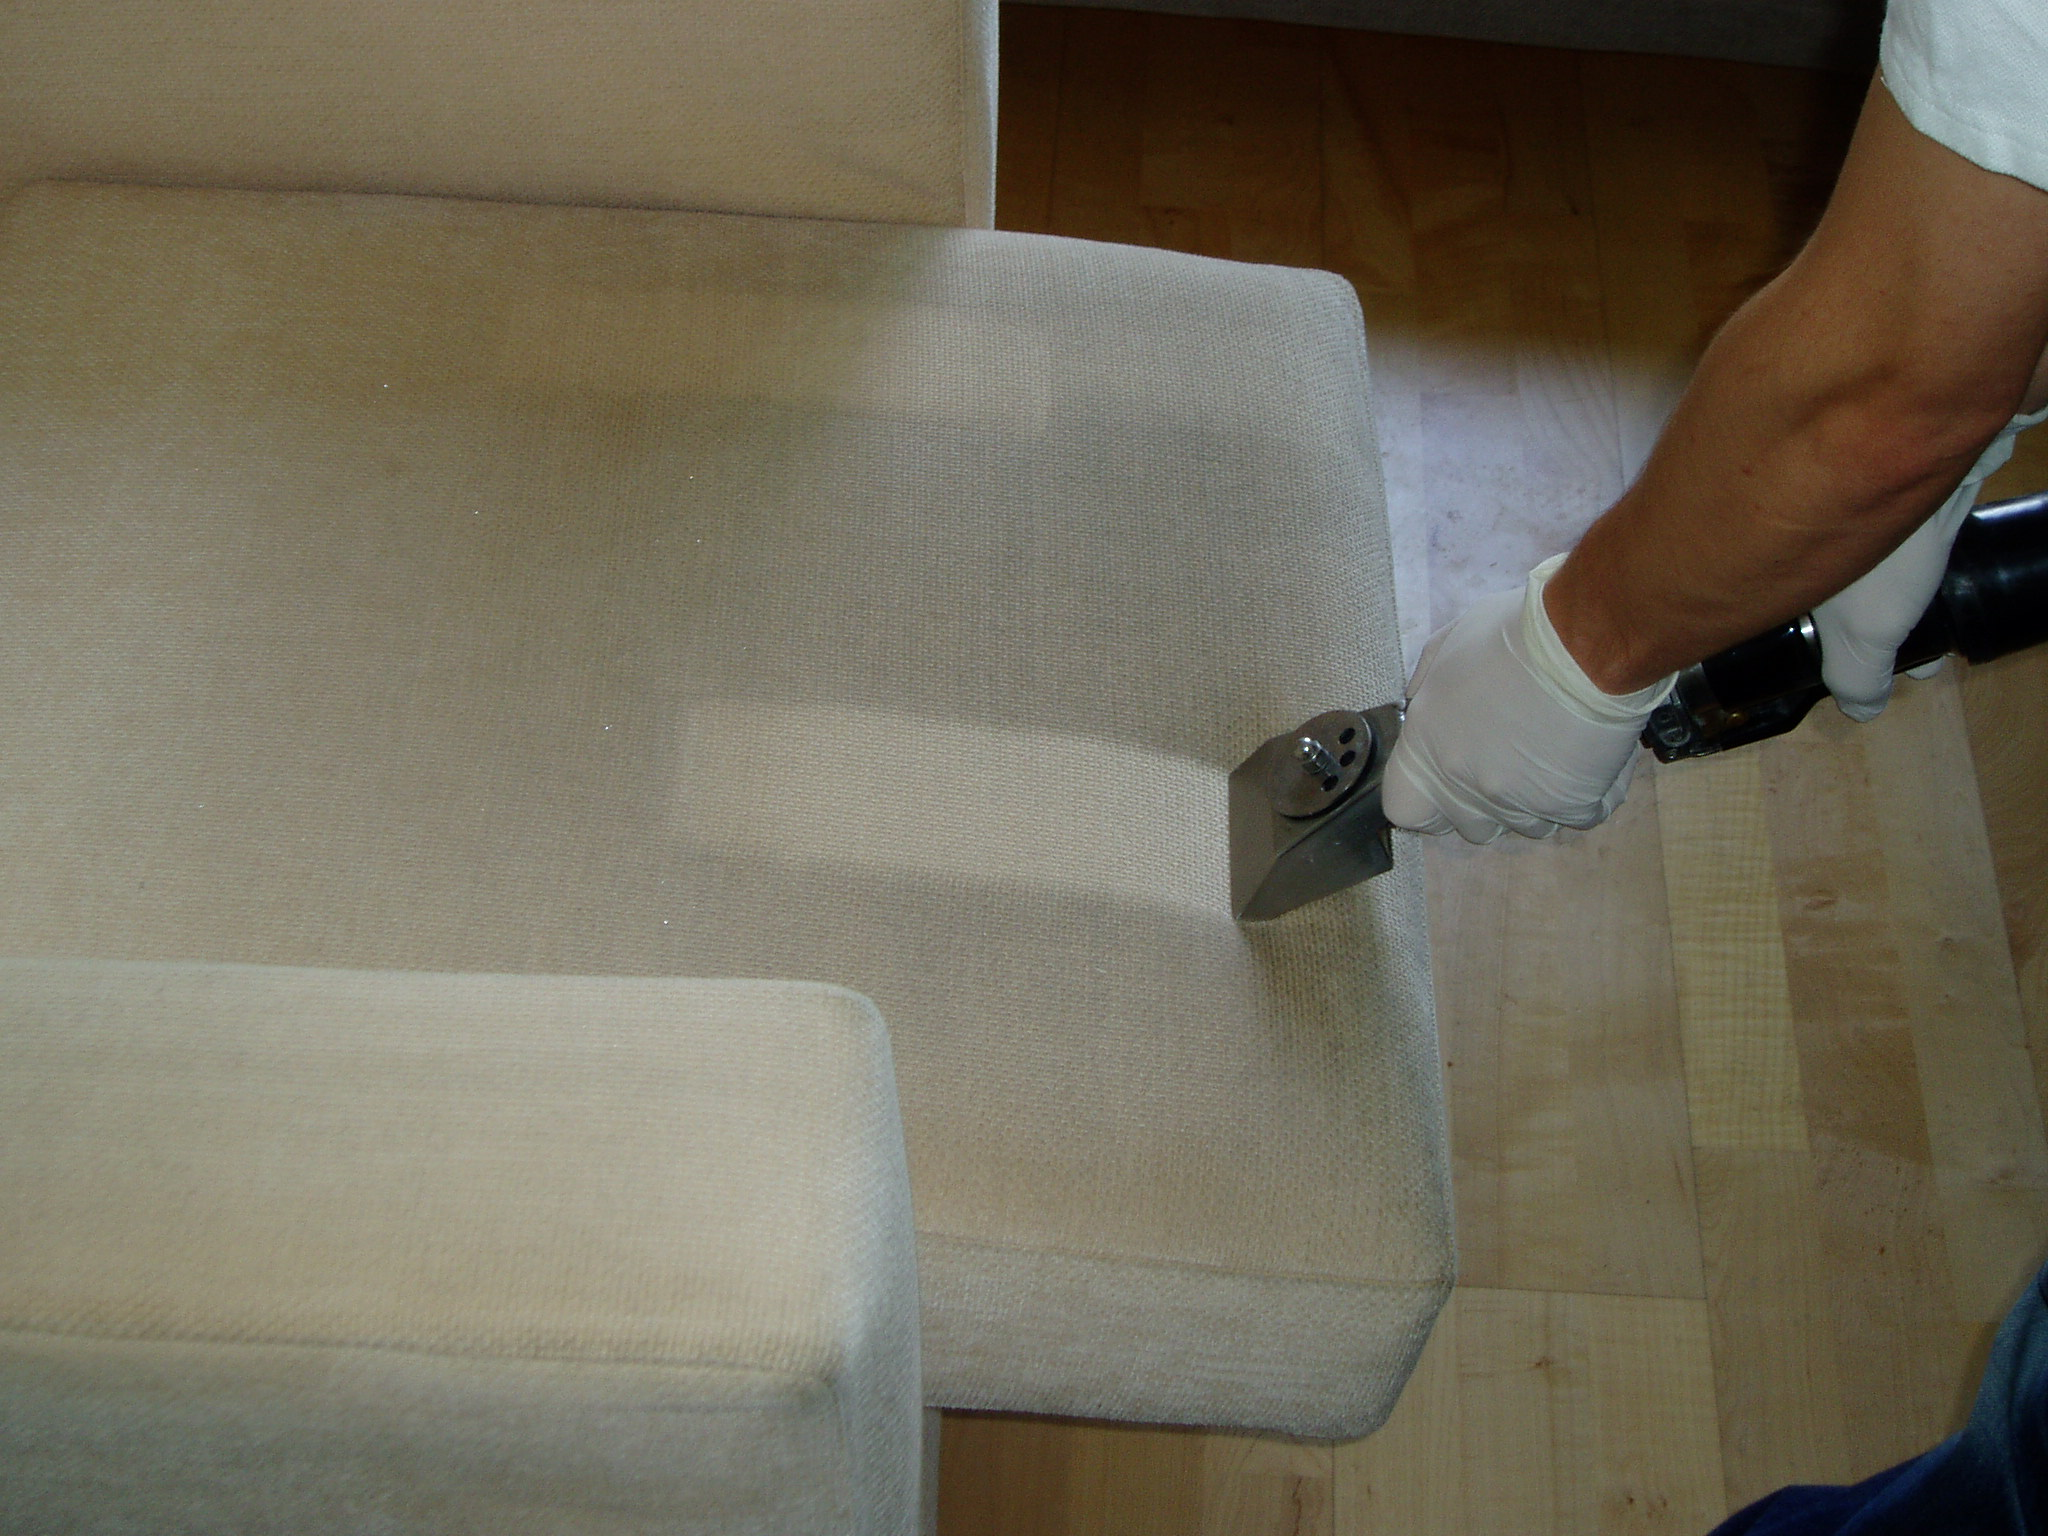 Upholstery Cleaning Services based in London